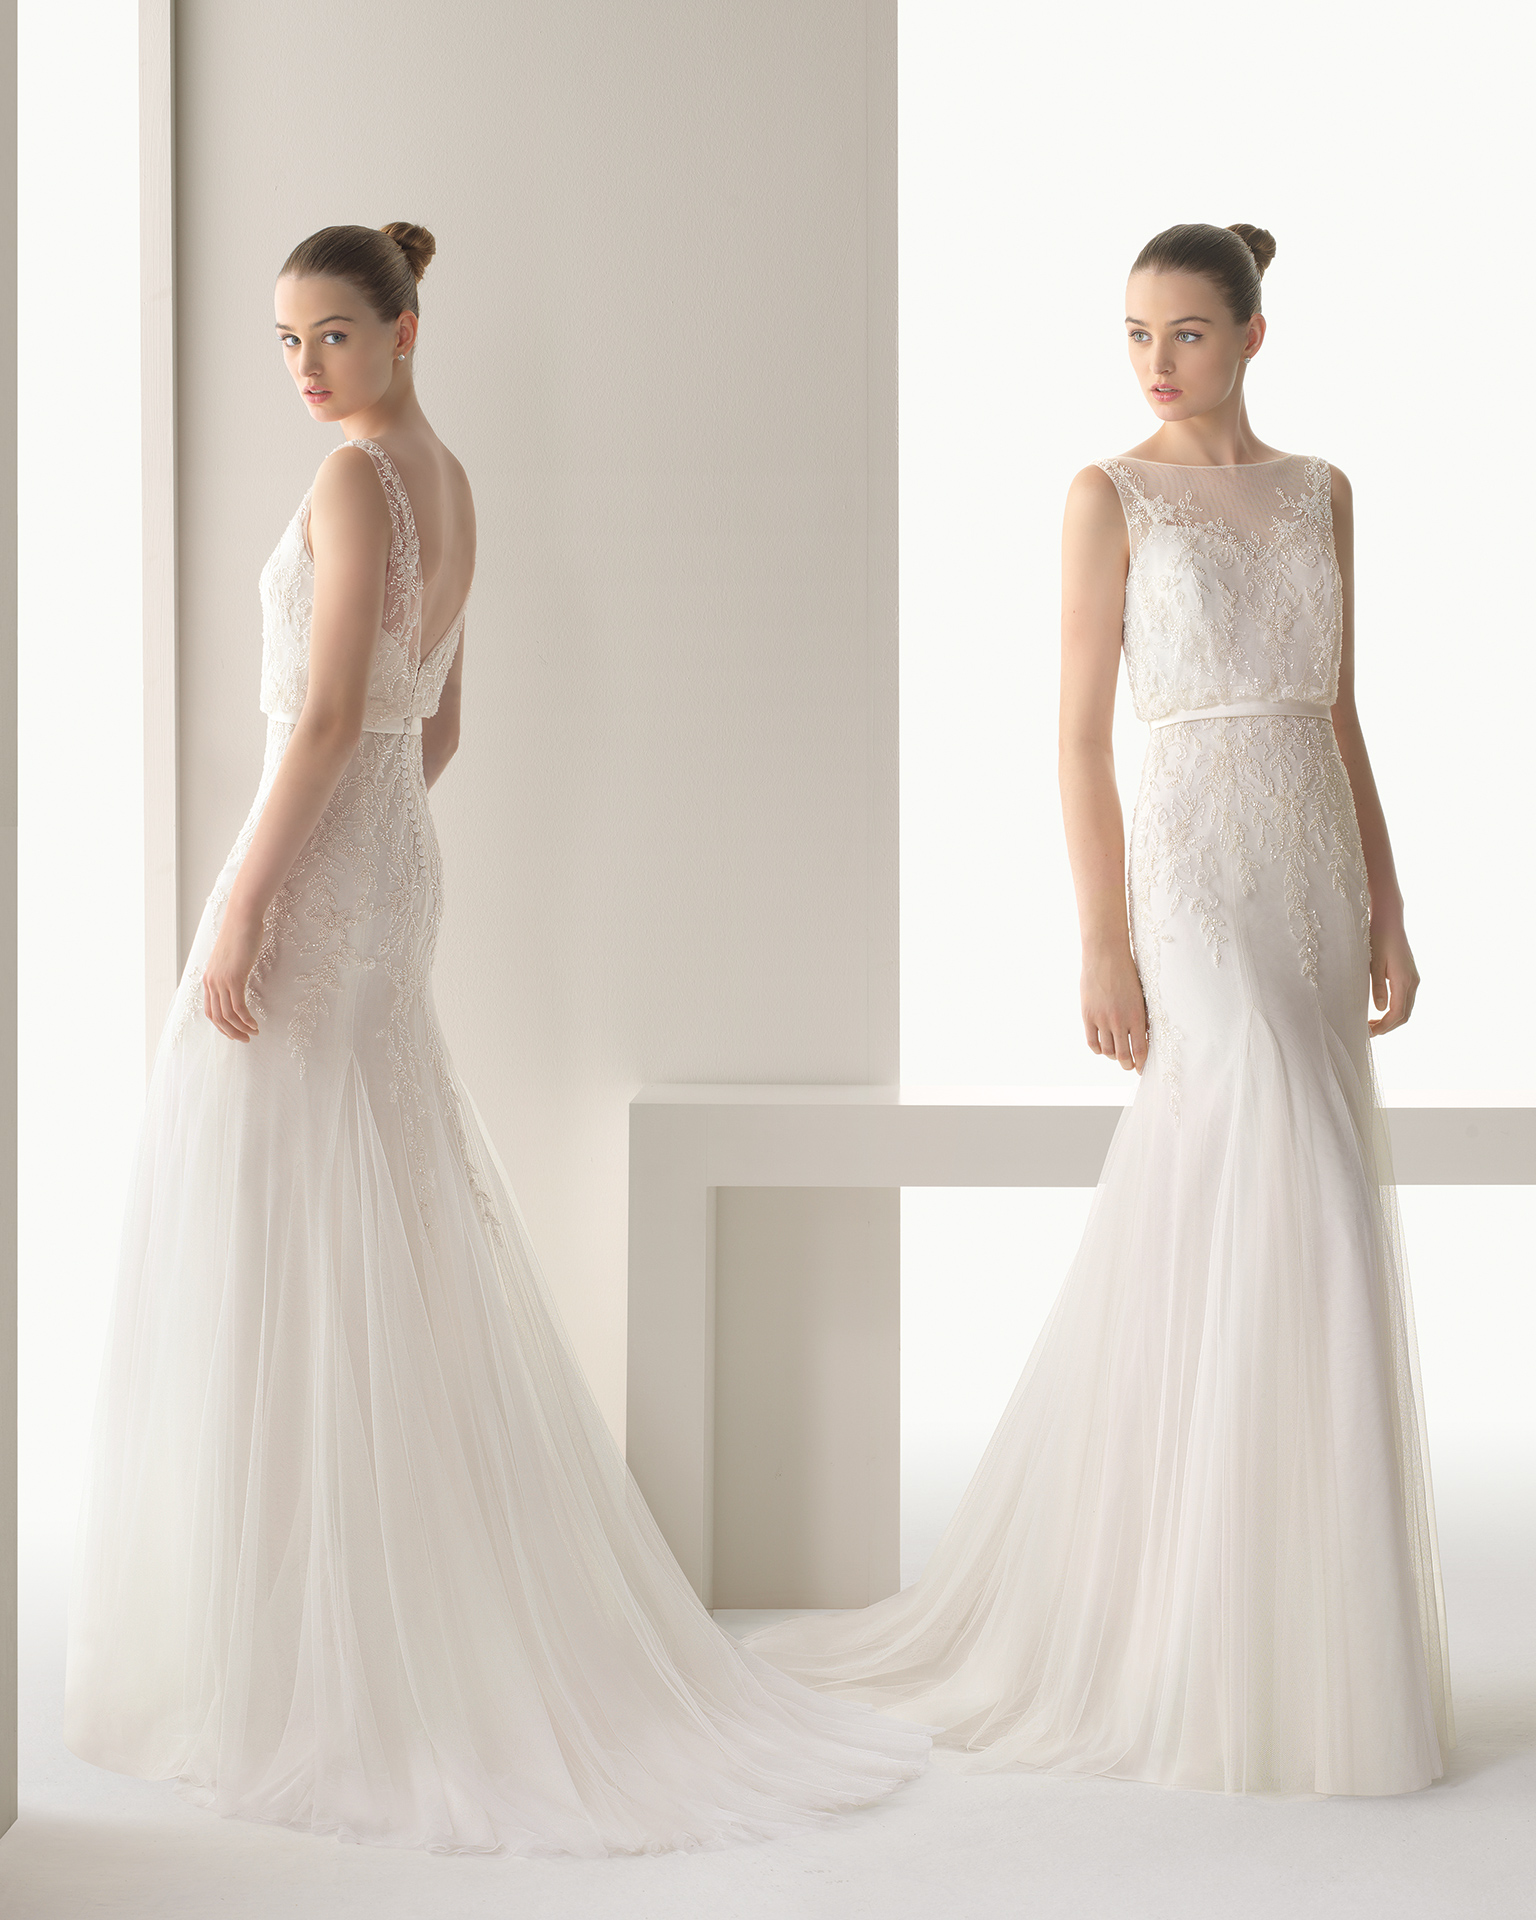 Soft by rosa clara wedding dresses 2015 modwedding for Rosa clara wedding dresses 2014